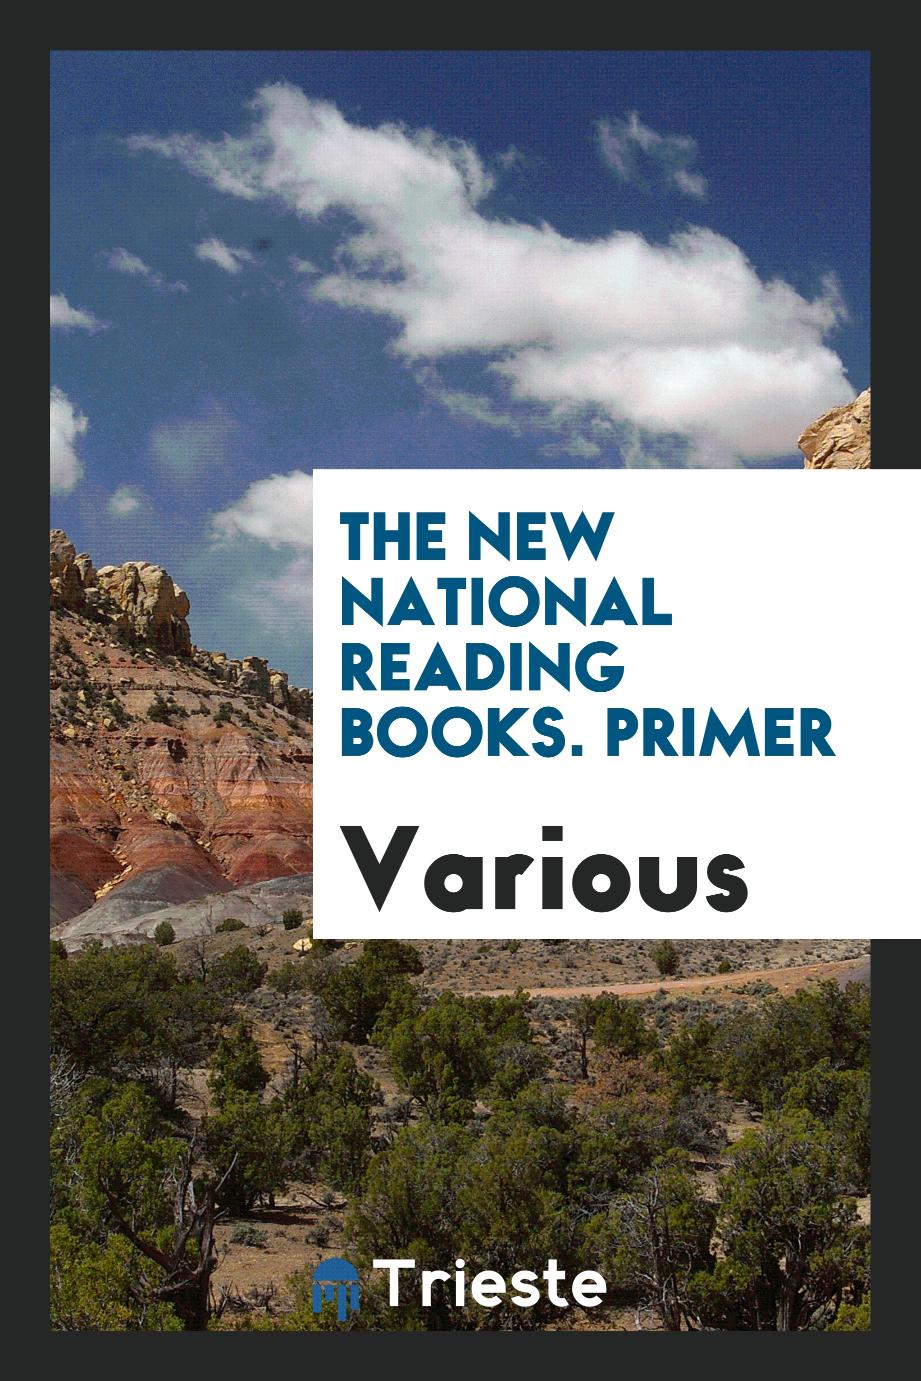 The new national reading books. Primer